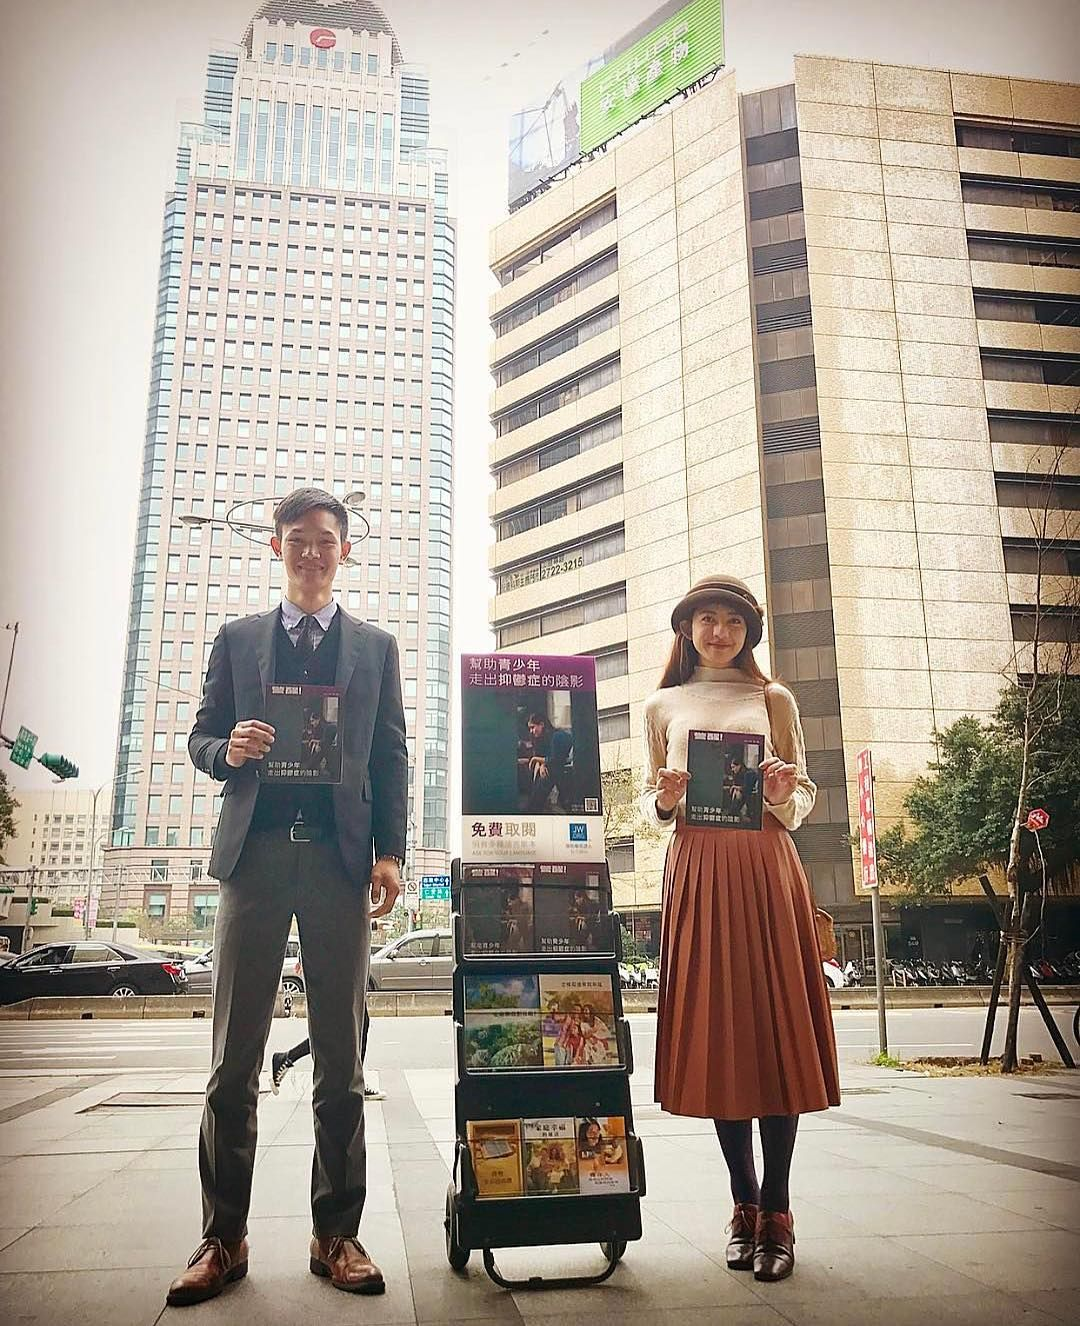 Public witnessing in Taipei, Taiwan  Photo shared by @iwaichristina